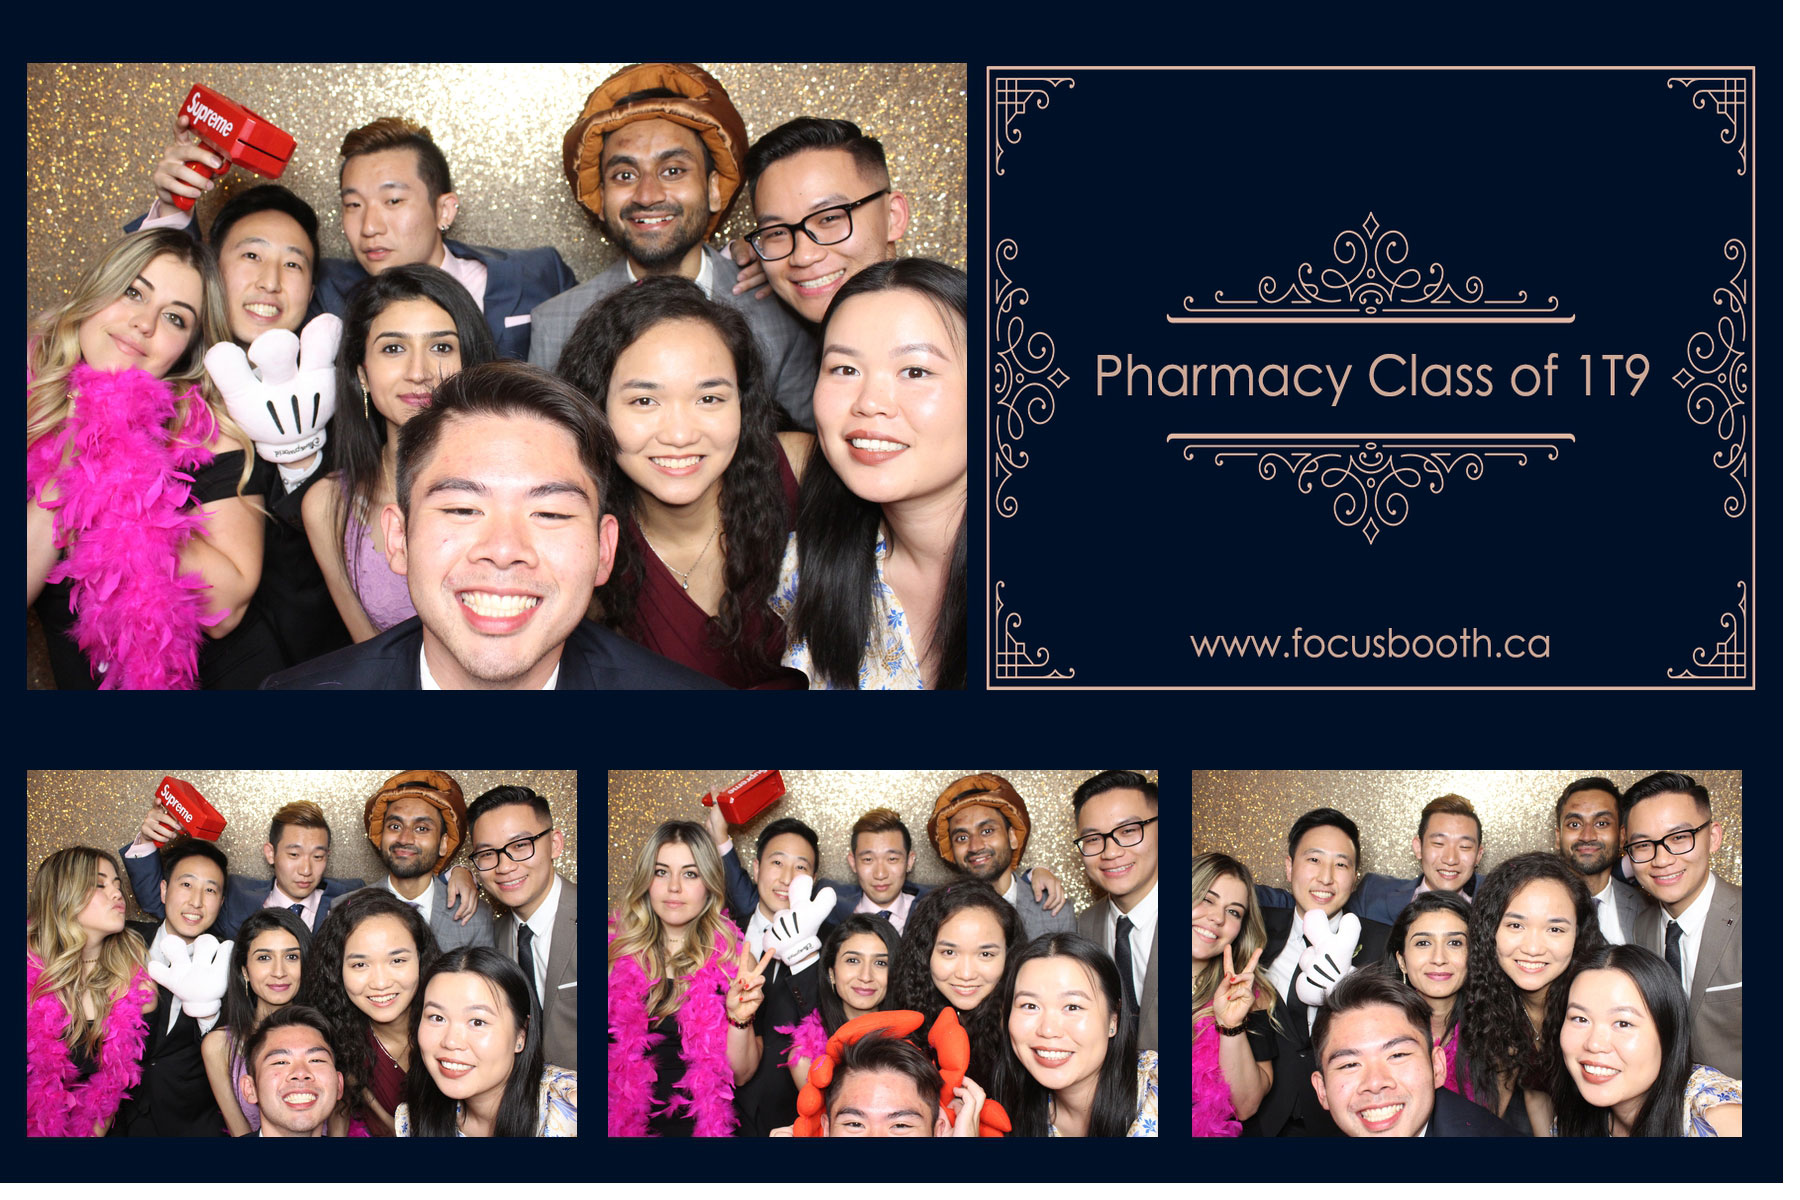 pharmacy school class event photo booth